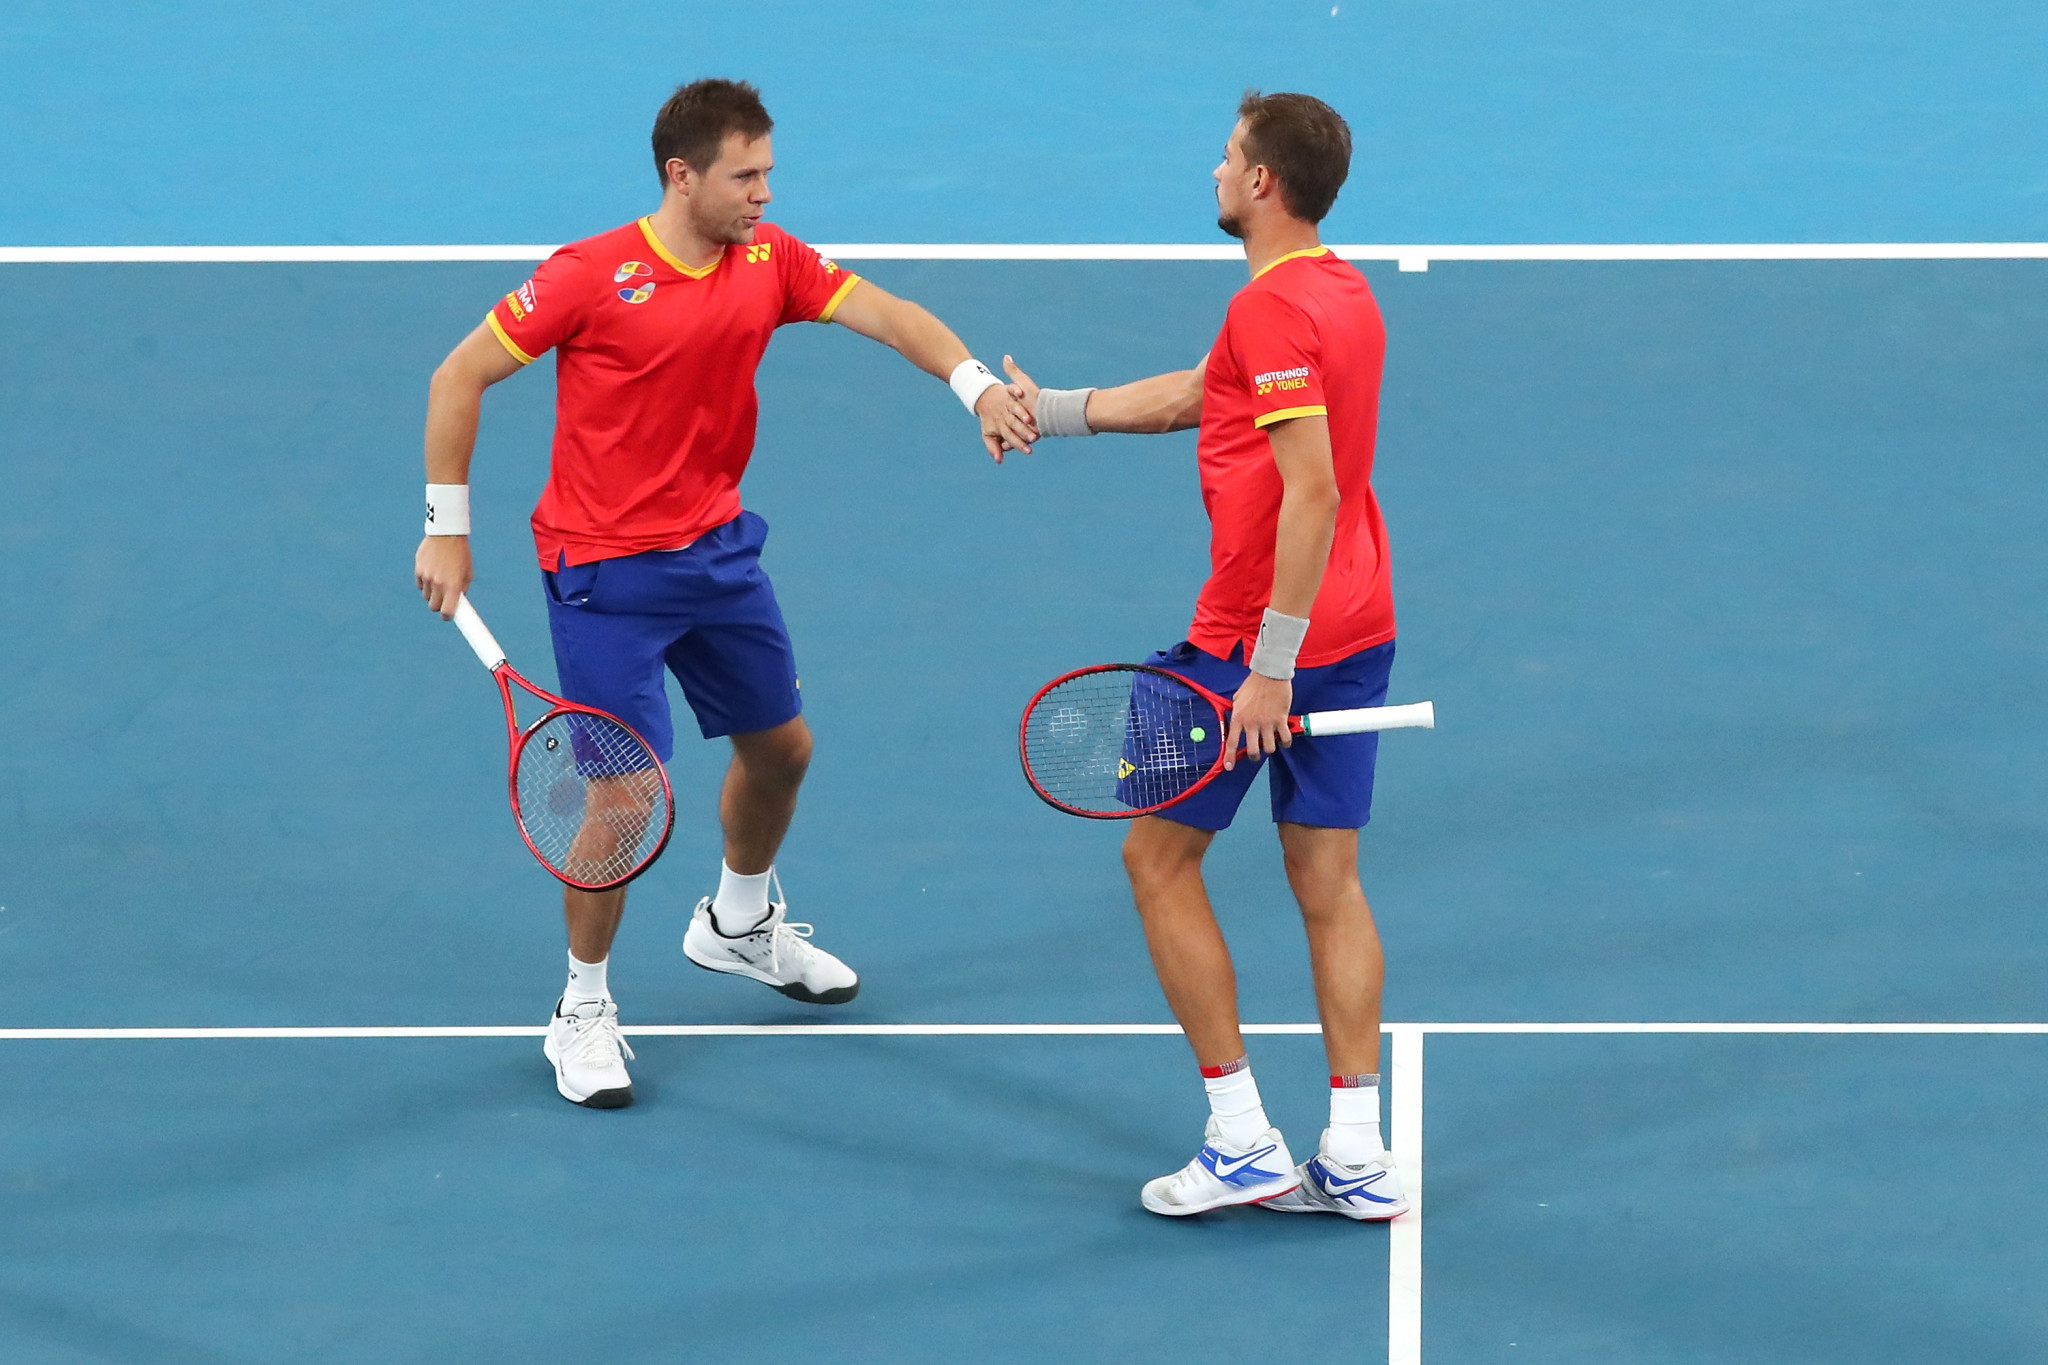 Moldova's Radu Albot and Alexander Cozbinov in action at the ATP Cup  in Australia - having heard the Romanian anthem mistakenly played to them before their opening match ©Getty Images